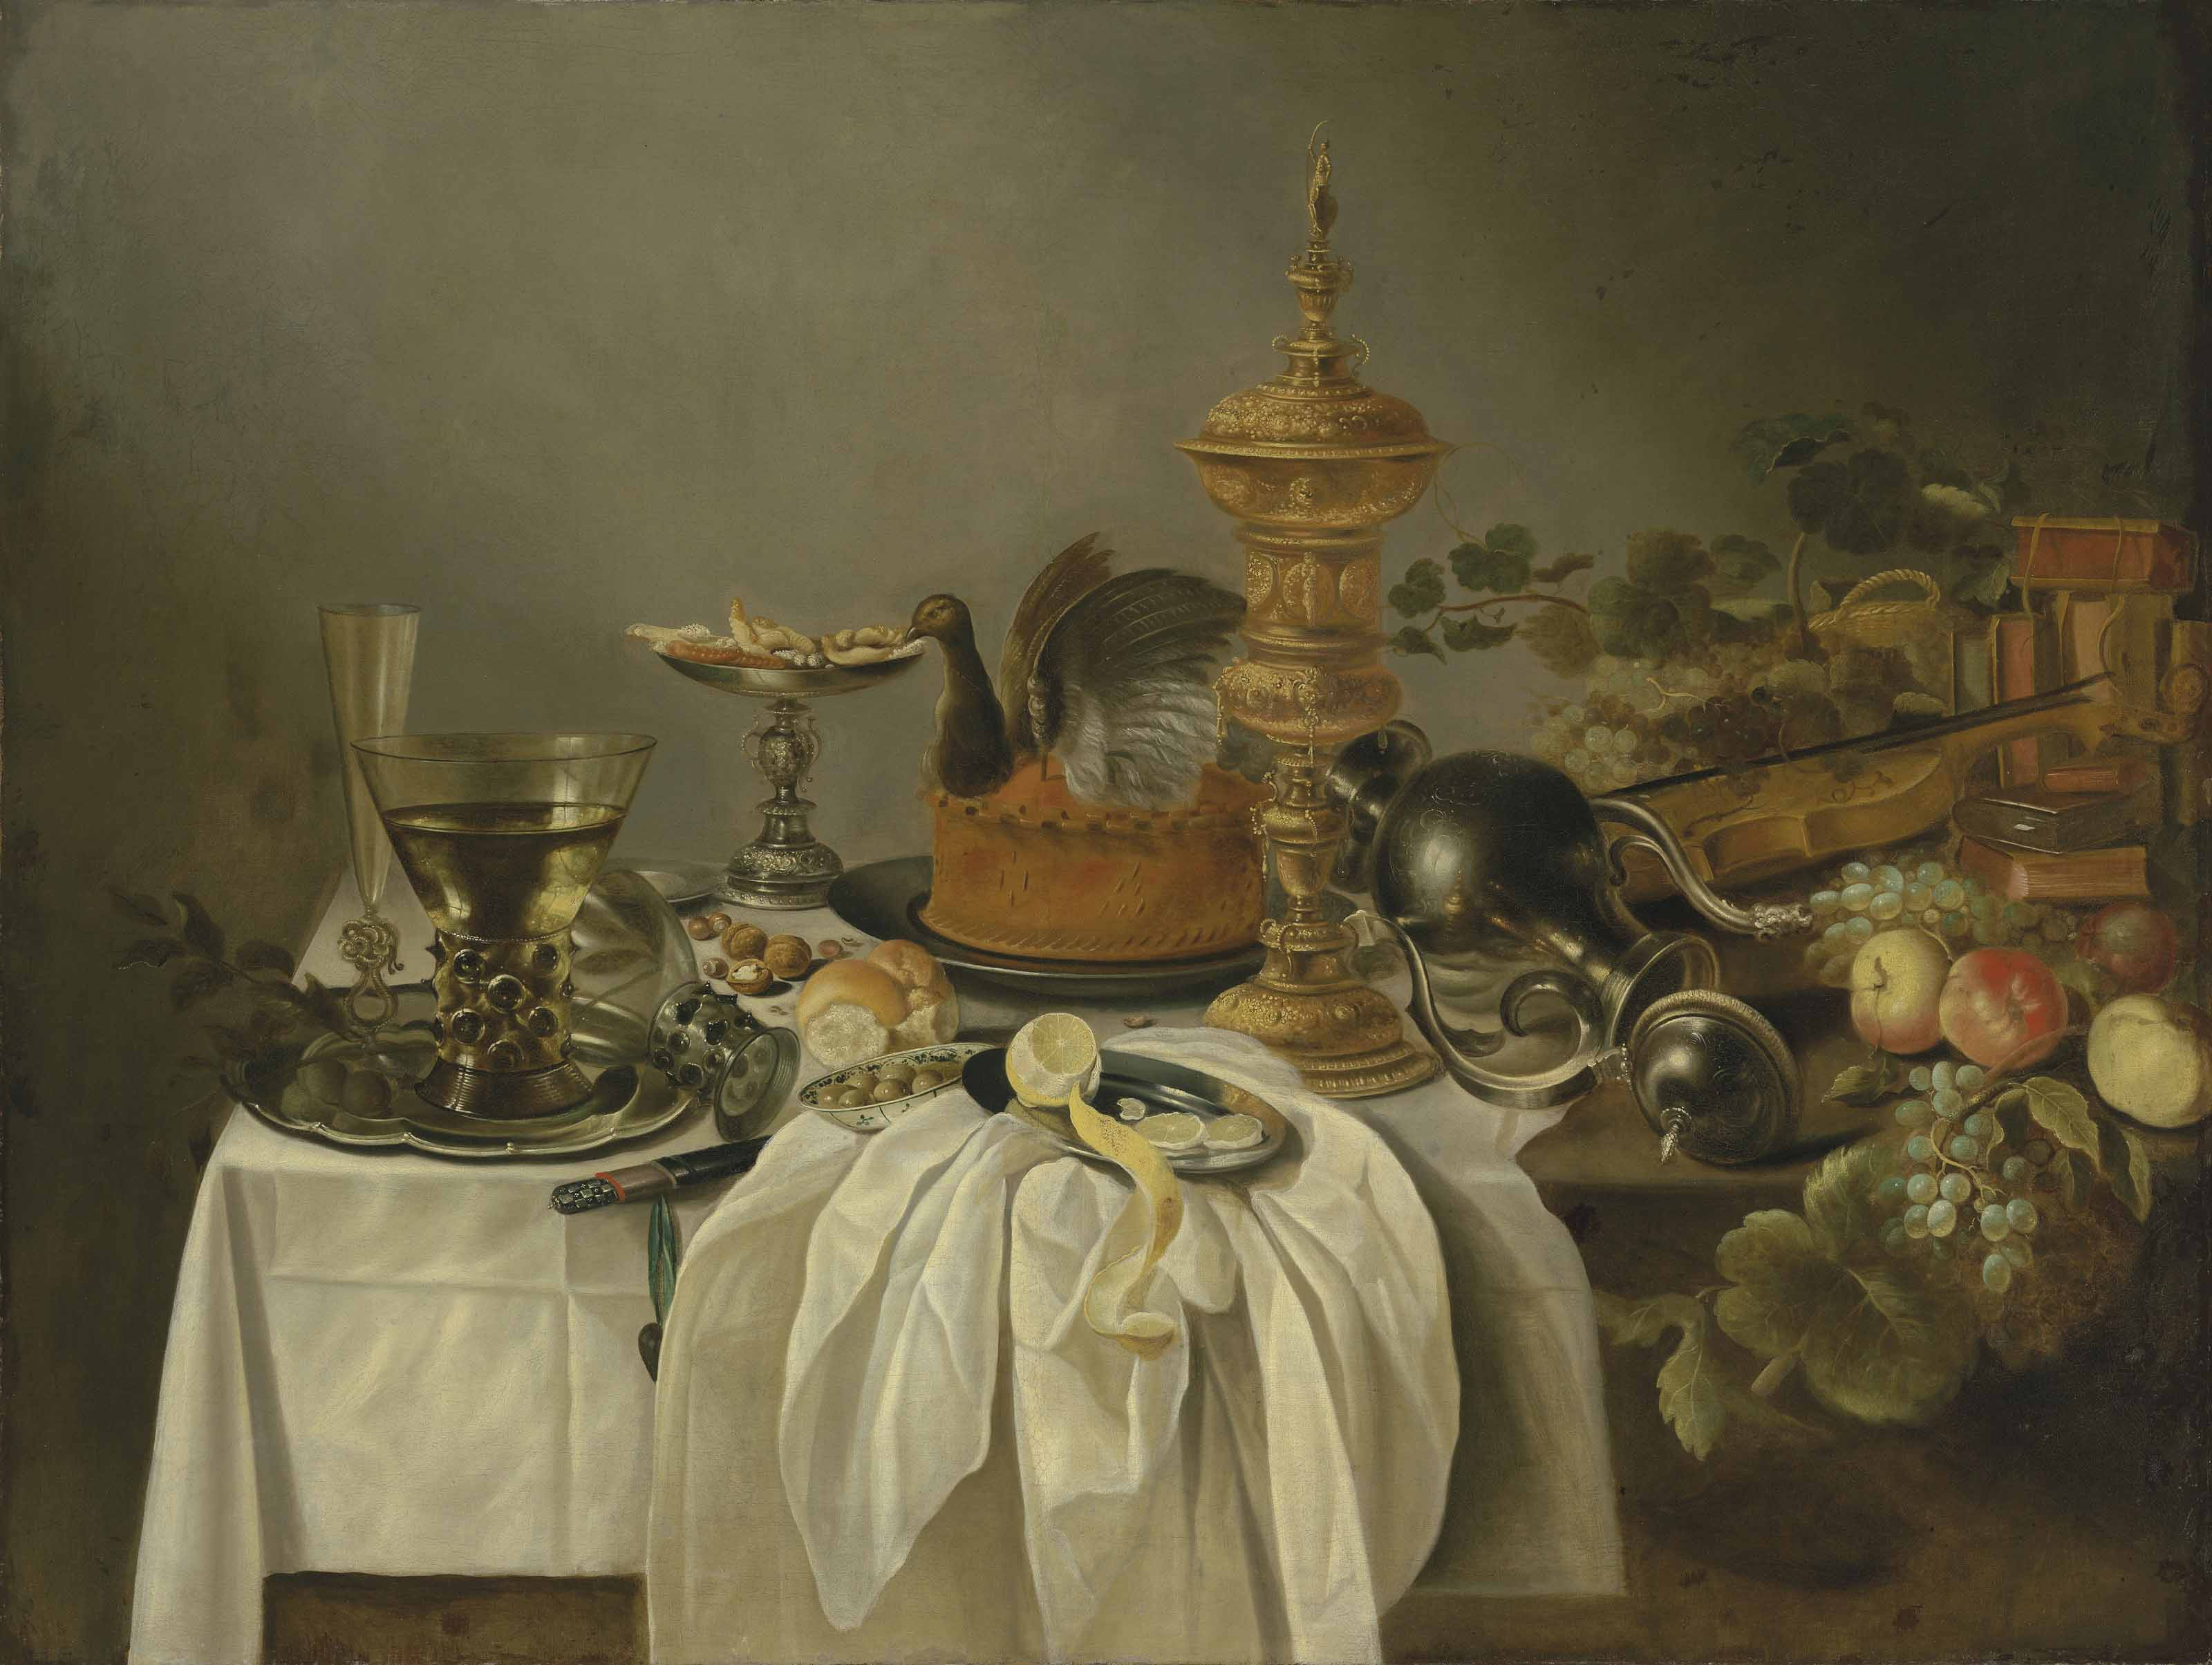 A pewter jug, a game pie, a silver tazza, roemers and a façon-de-Venise flute on a pewter platter, with a partly-peeled lemon, a dish of olives, and other fruit, on a partially draped table